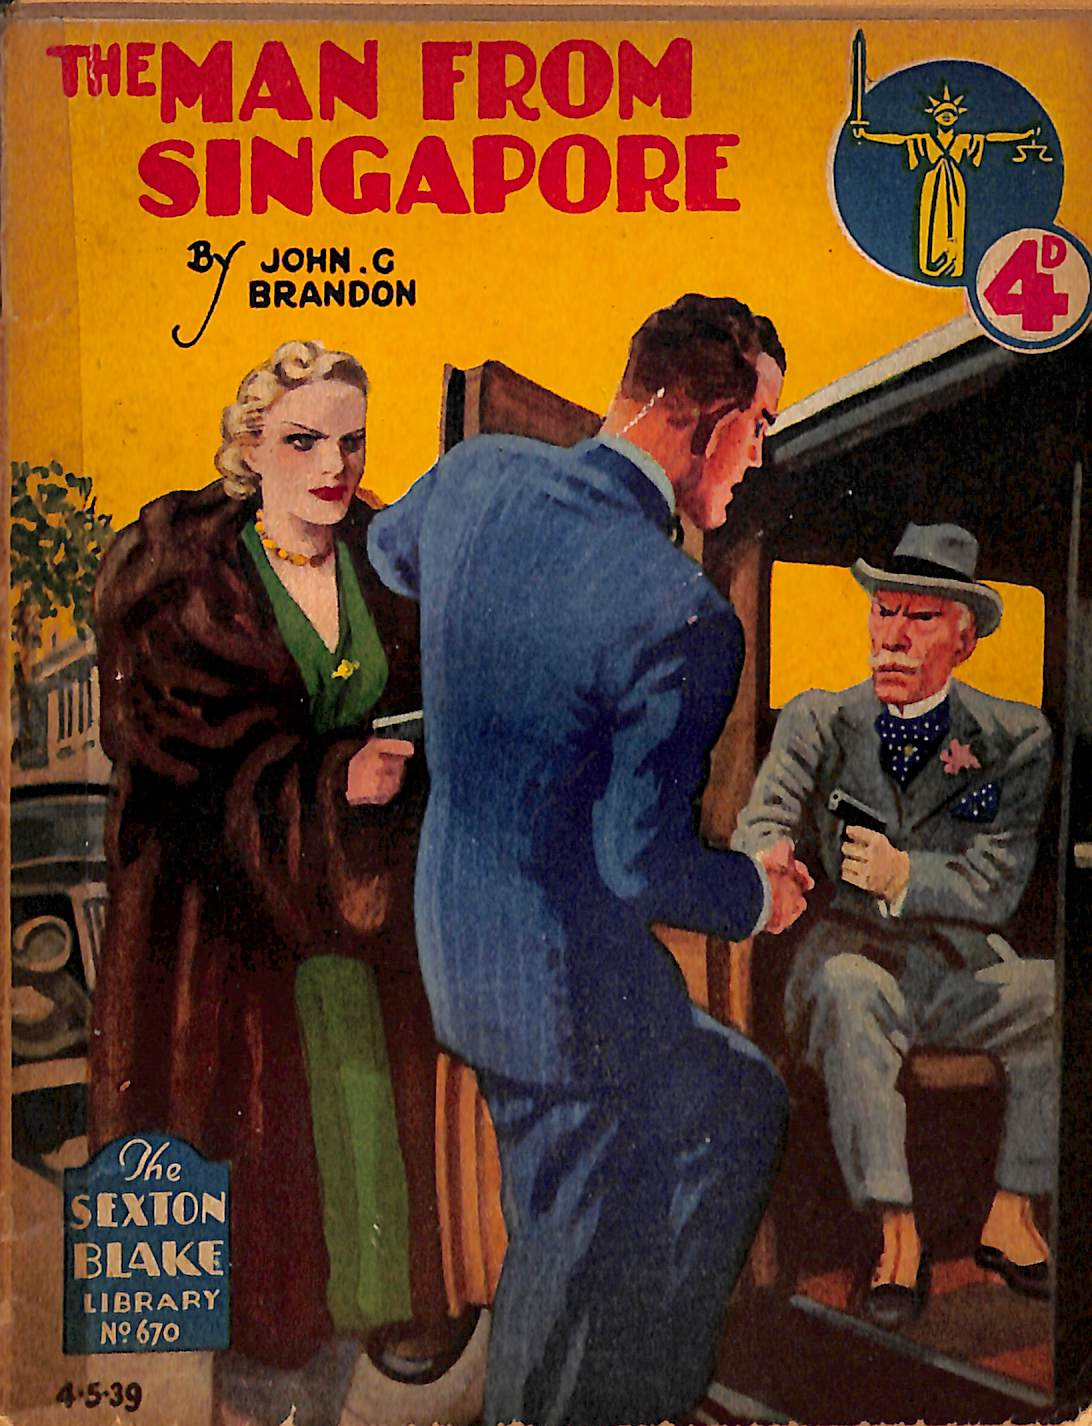 Comic Book Cover For Sexton Blake Library S2 670 - The Man from Singapore